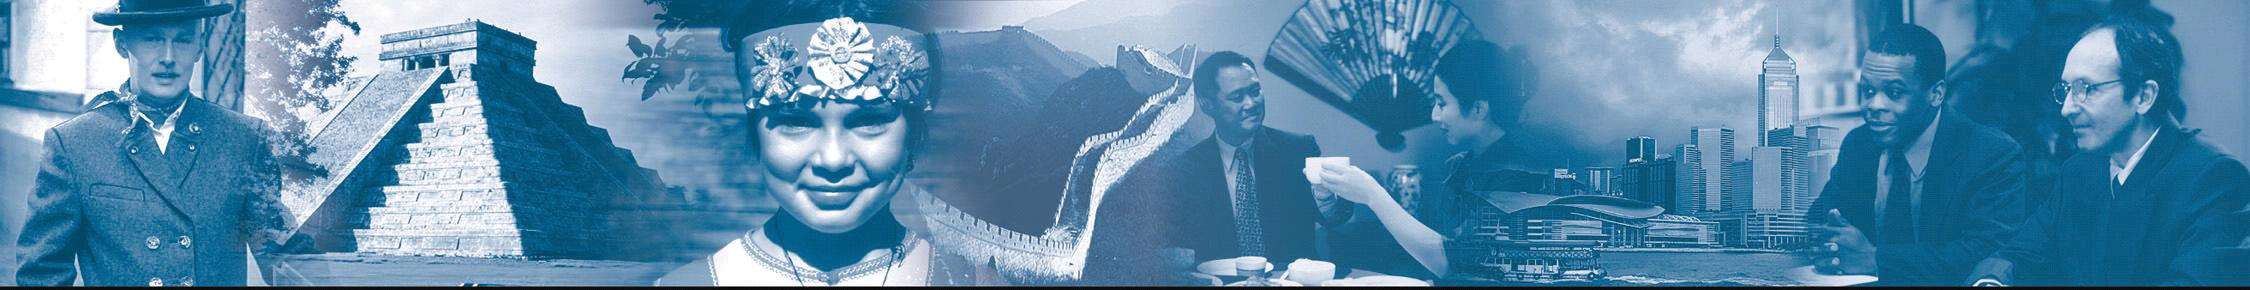 the international monetary system essay Before 1971, international monetary system was linked to gold, such as us dollar, anchored to gold and then other currencies should each stabilize their currencies to the anchored dollar as a result, this gold standard system created an interdependence of the currency system, fixed exchange rates, and stabilized inflation.